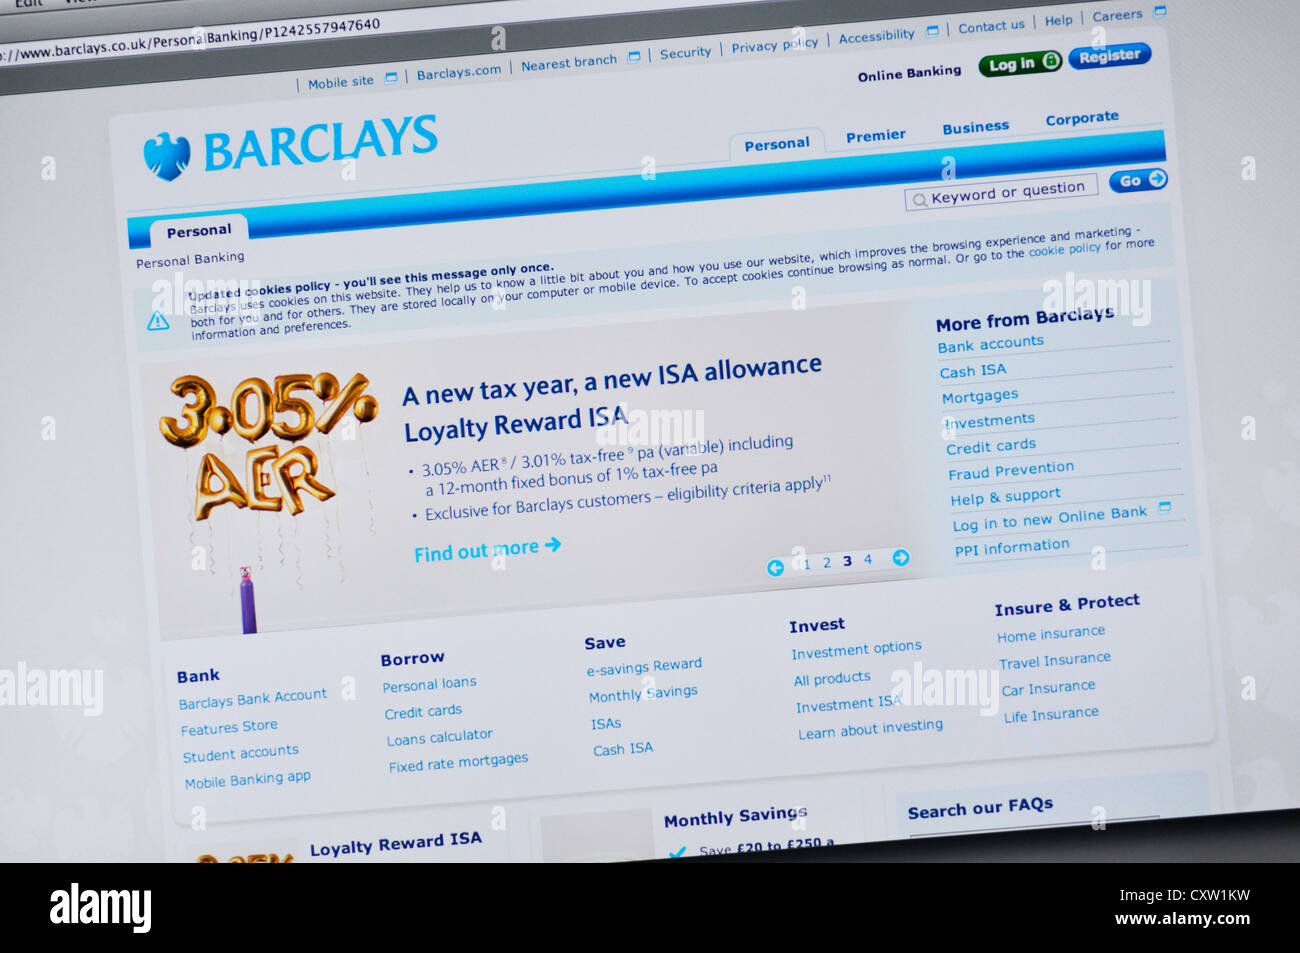 Barclays website - online banking Stock Photo: 50951933 - Alamy